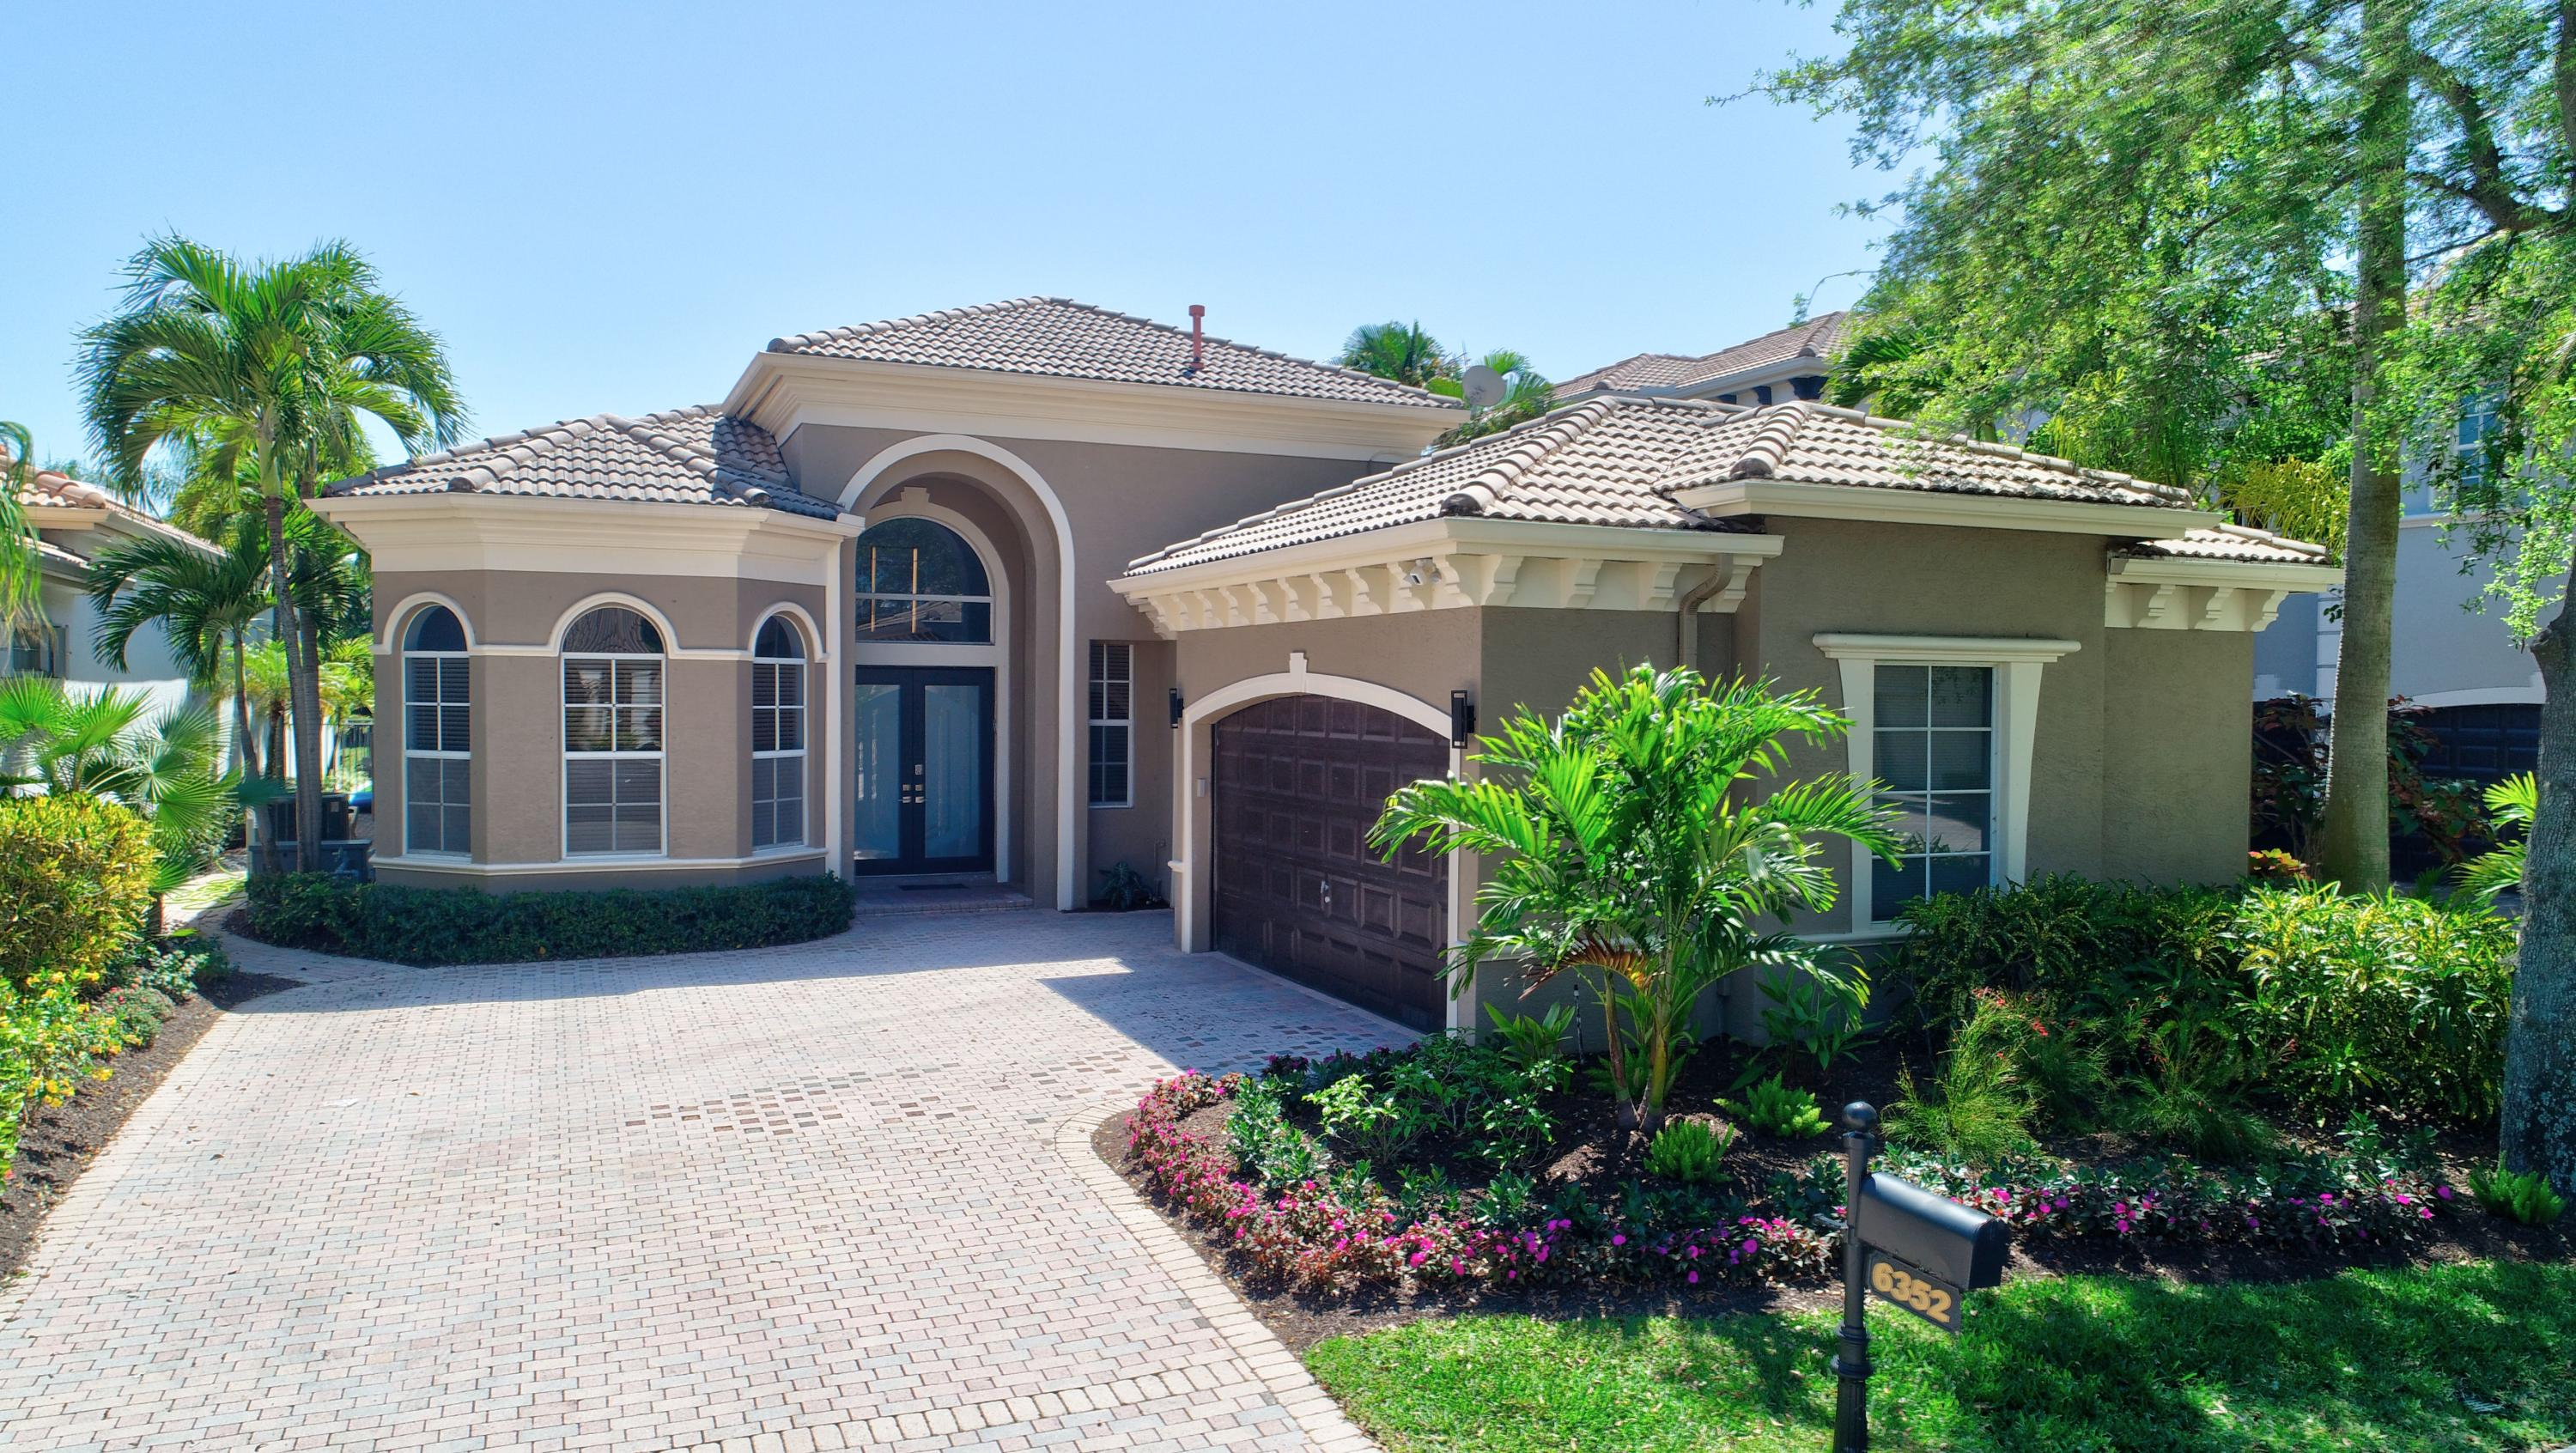 Photo of 6352 Via Venetia N, Delray Beach, FL 33484